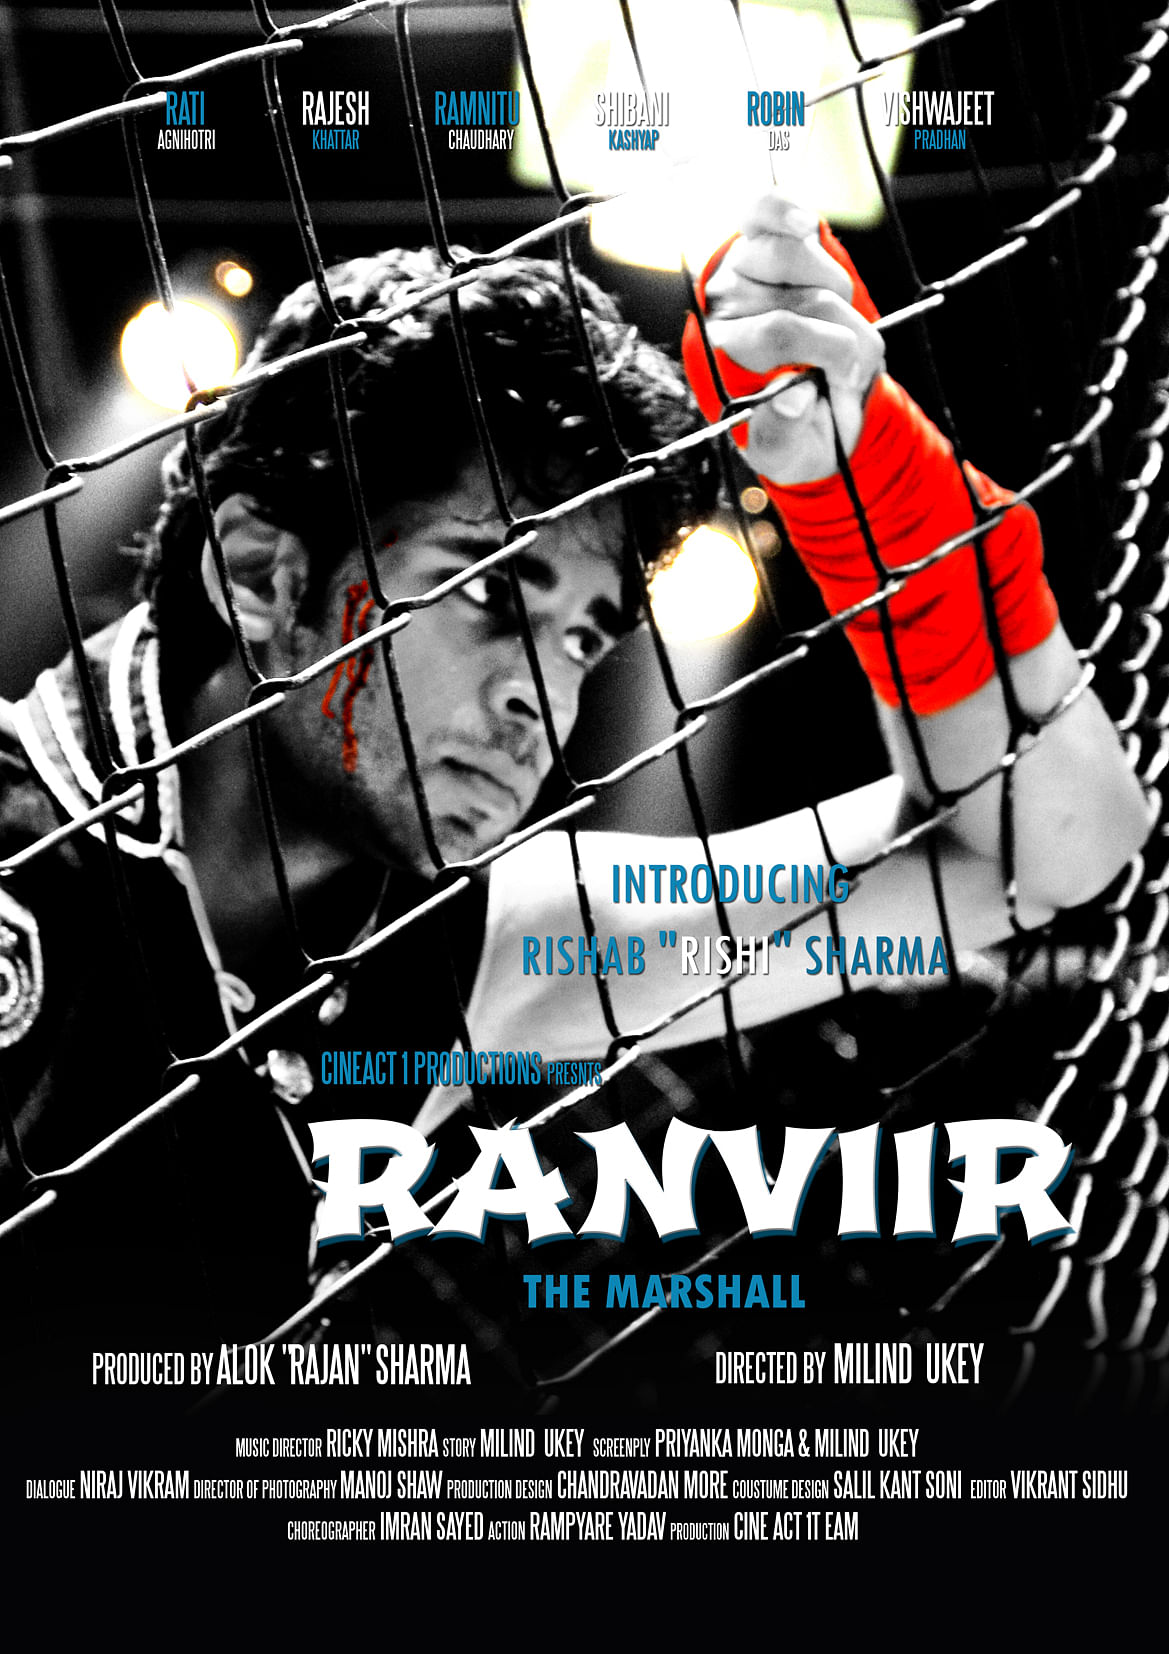 Movie Review: Ranviir The Marshall – Wobbly Fight Movie with strong doses of sentiment